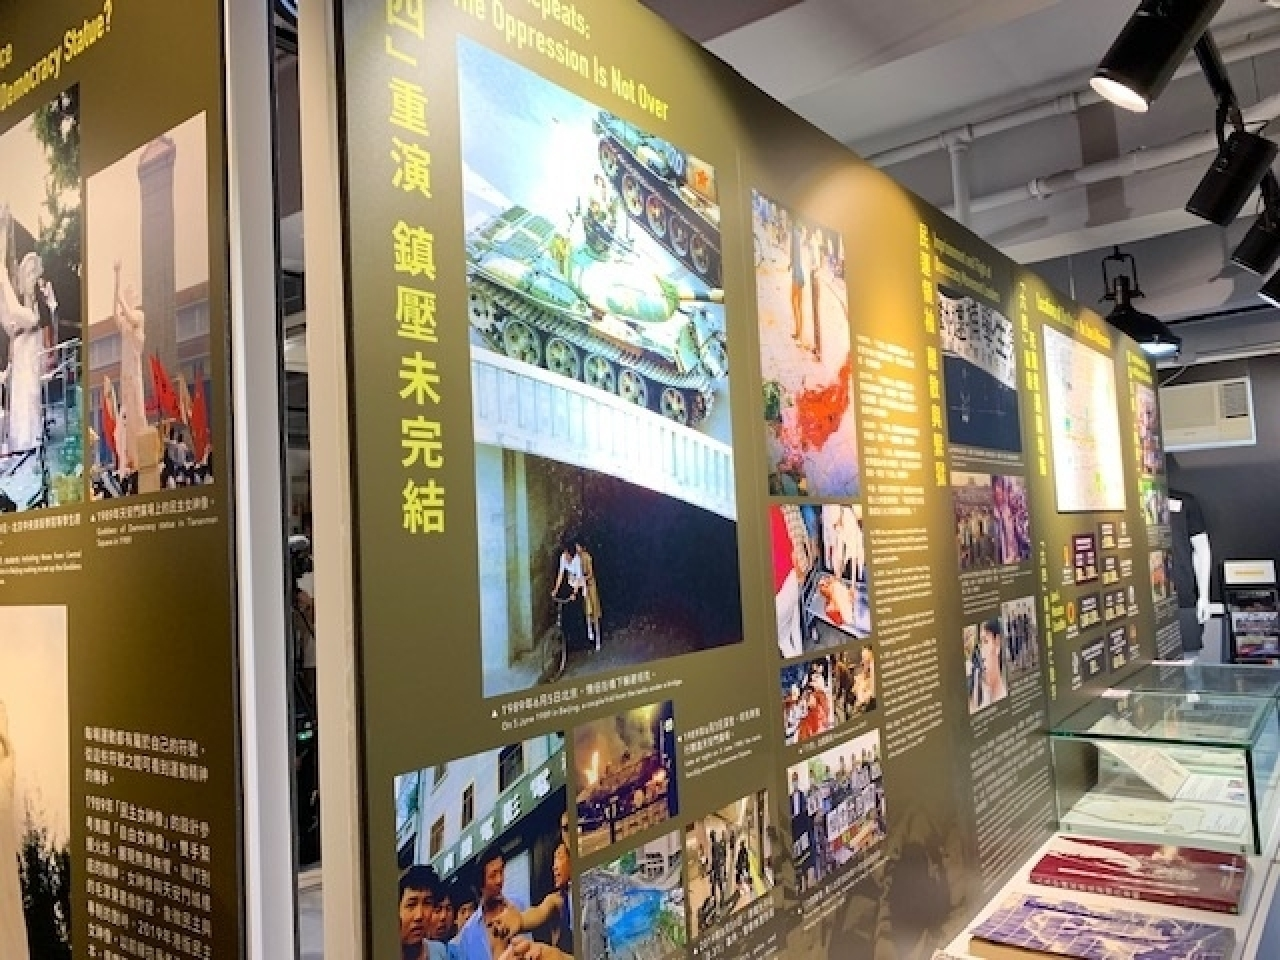 FEHD officers said they have begun enforcement work against the museum after an investigation. File photo: RTHK